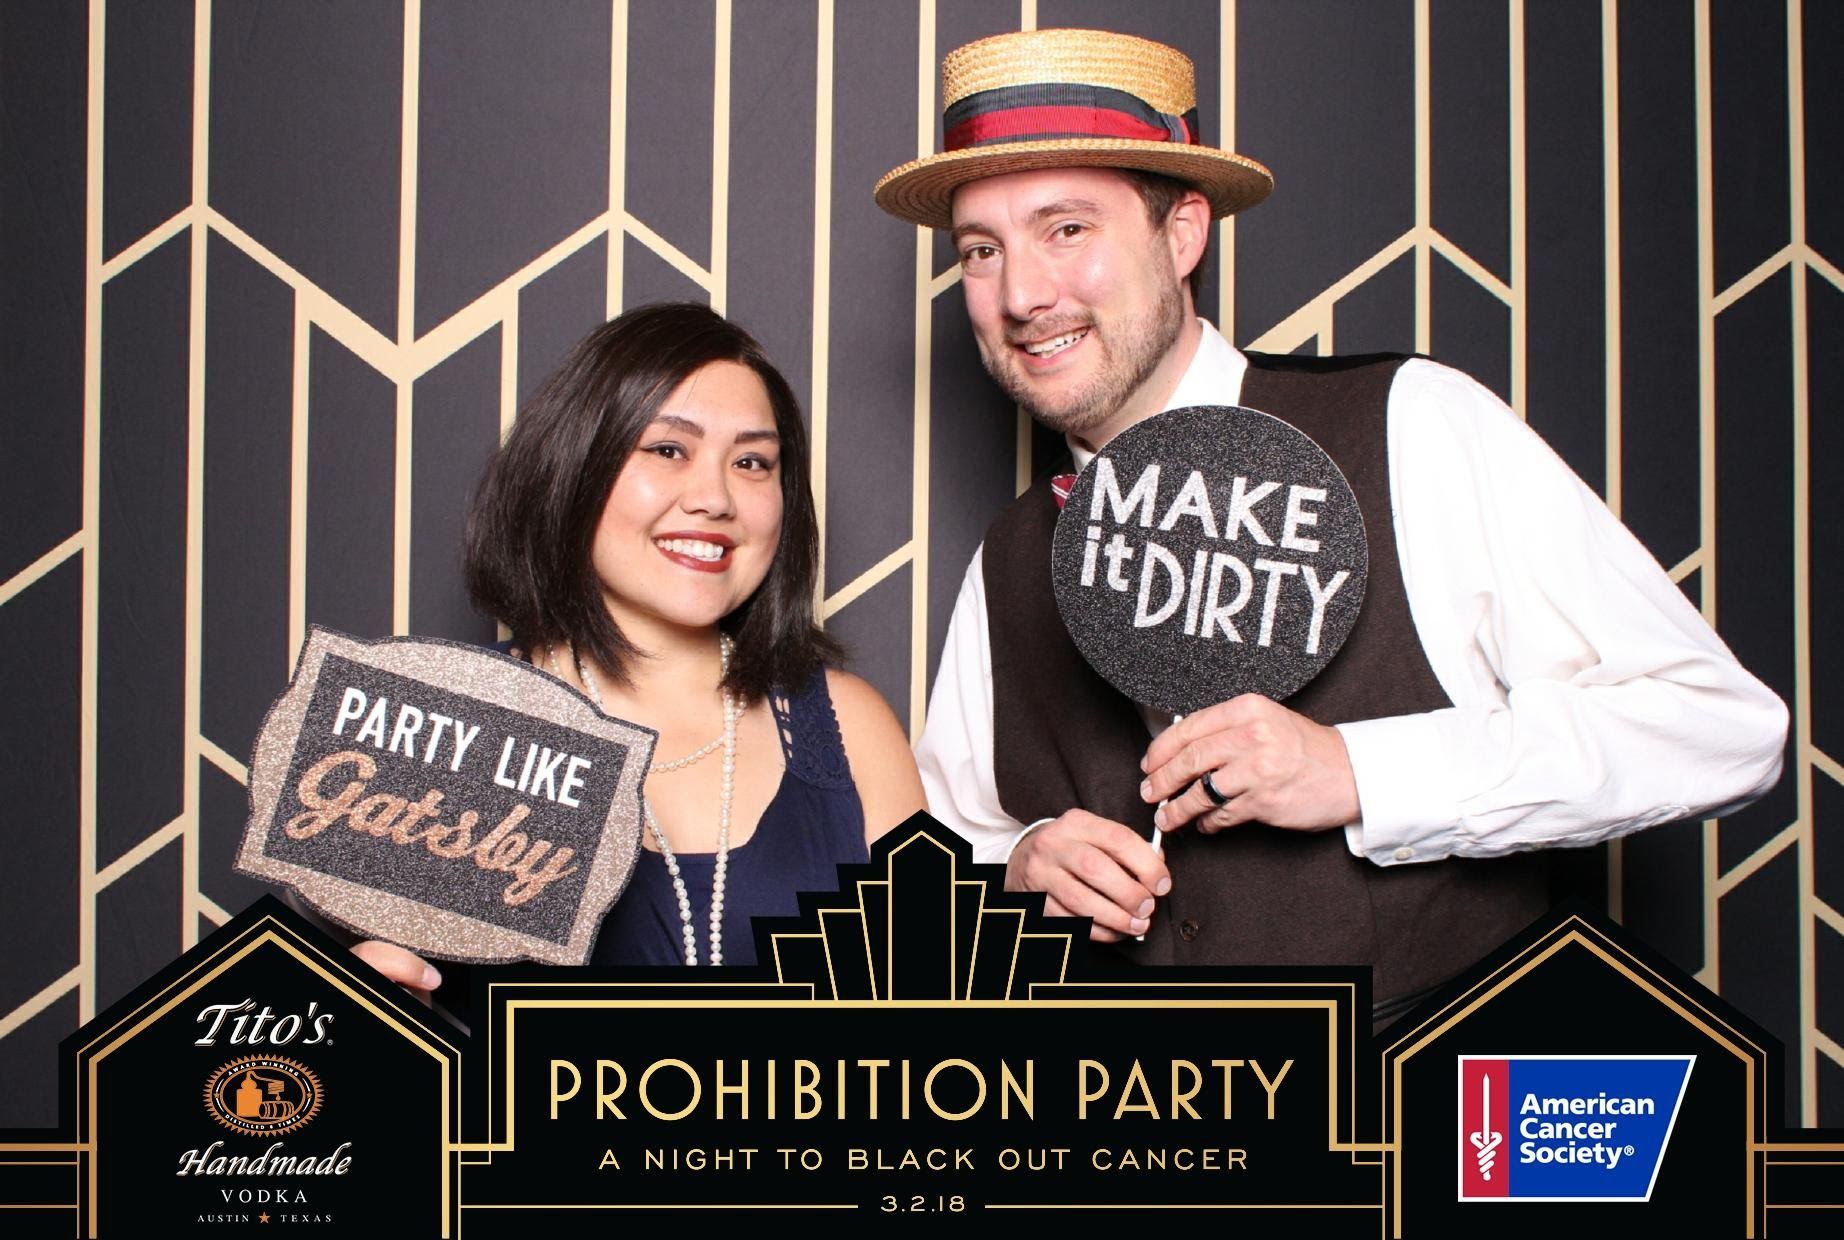 The Flash Bar at the Prohibition Party